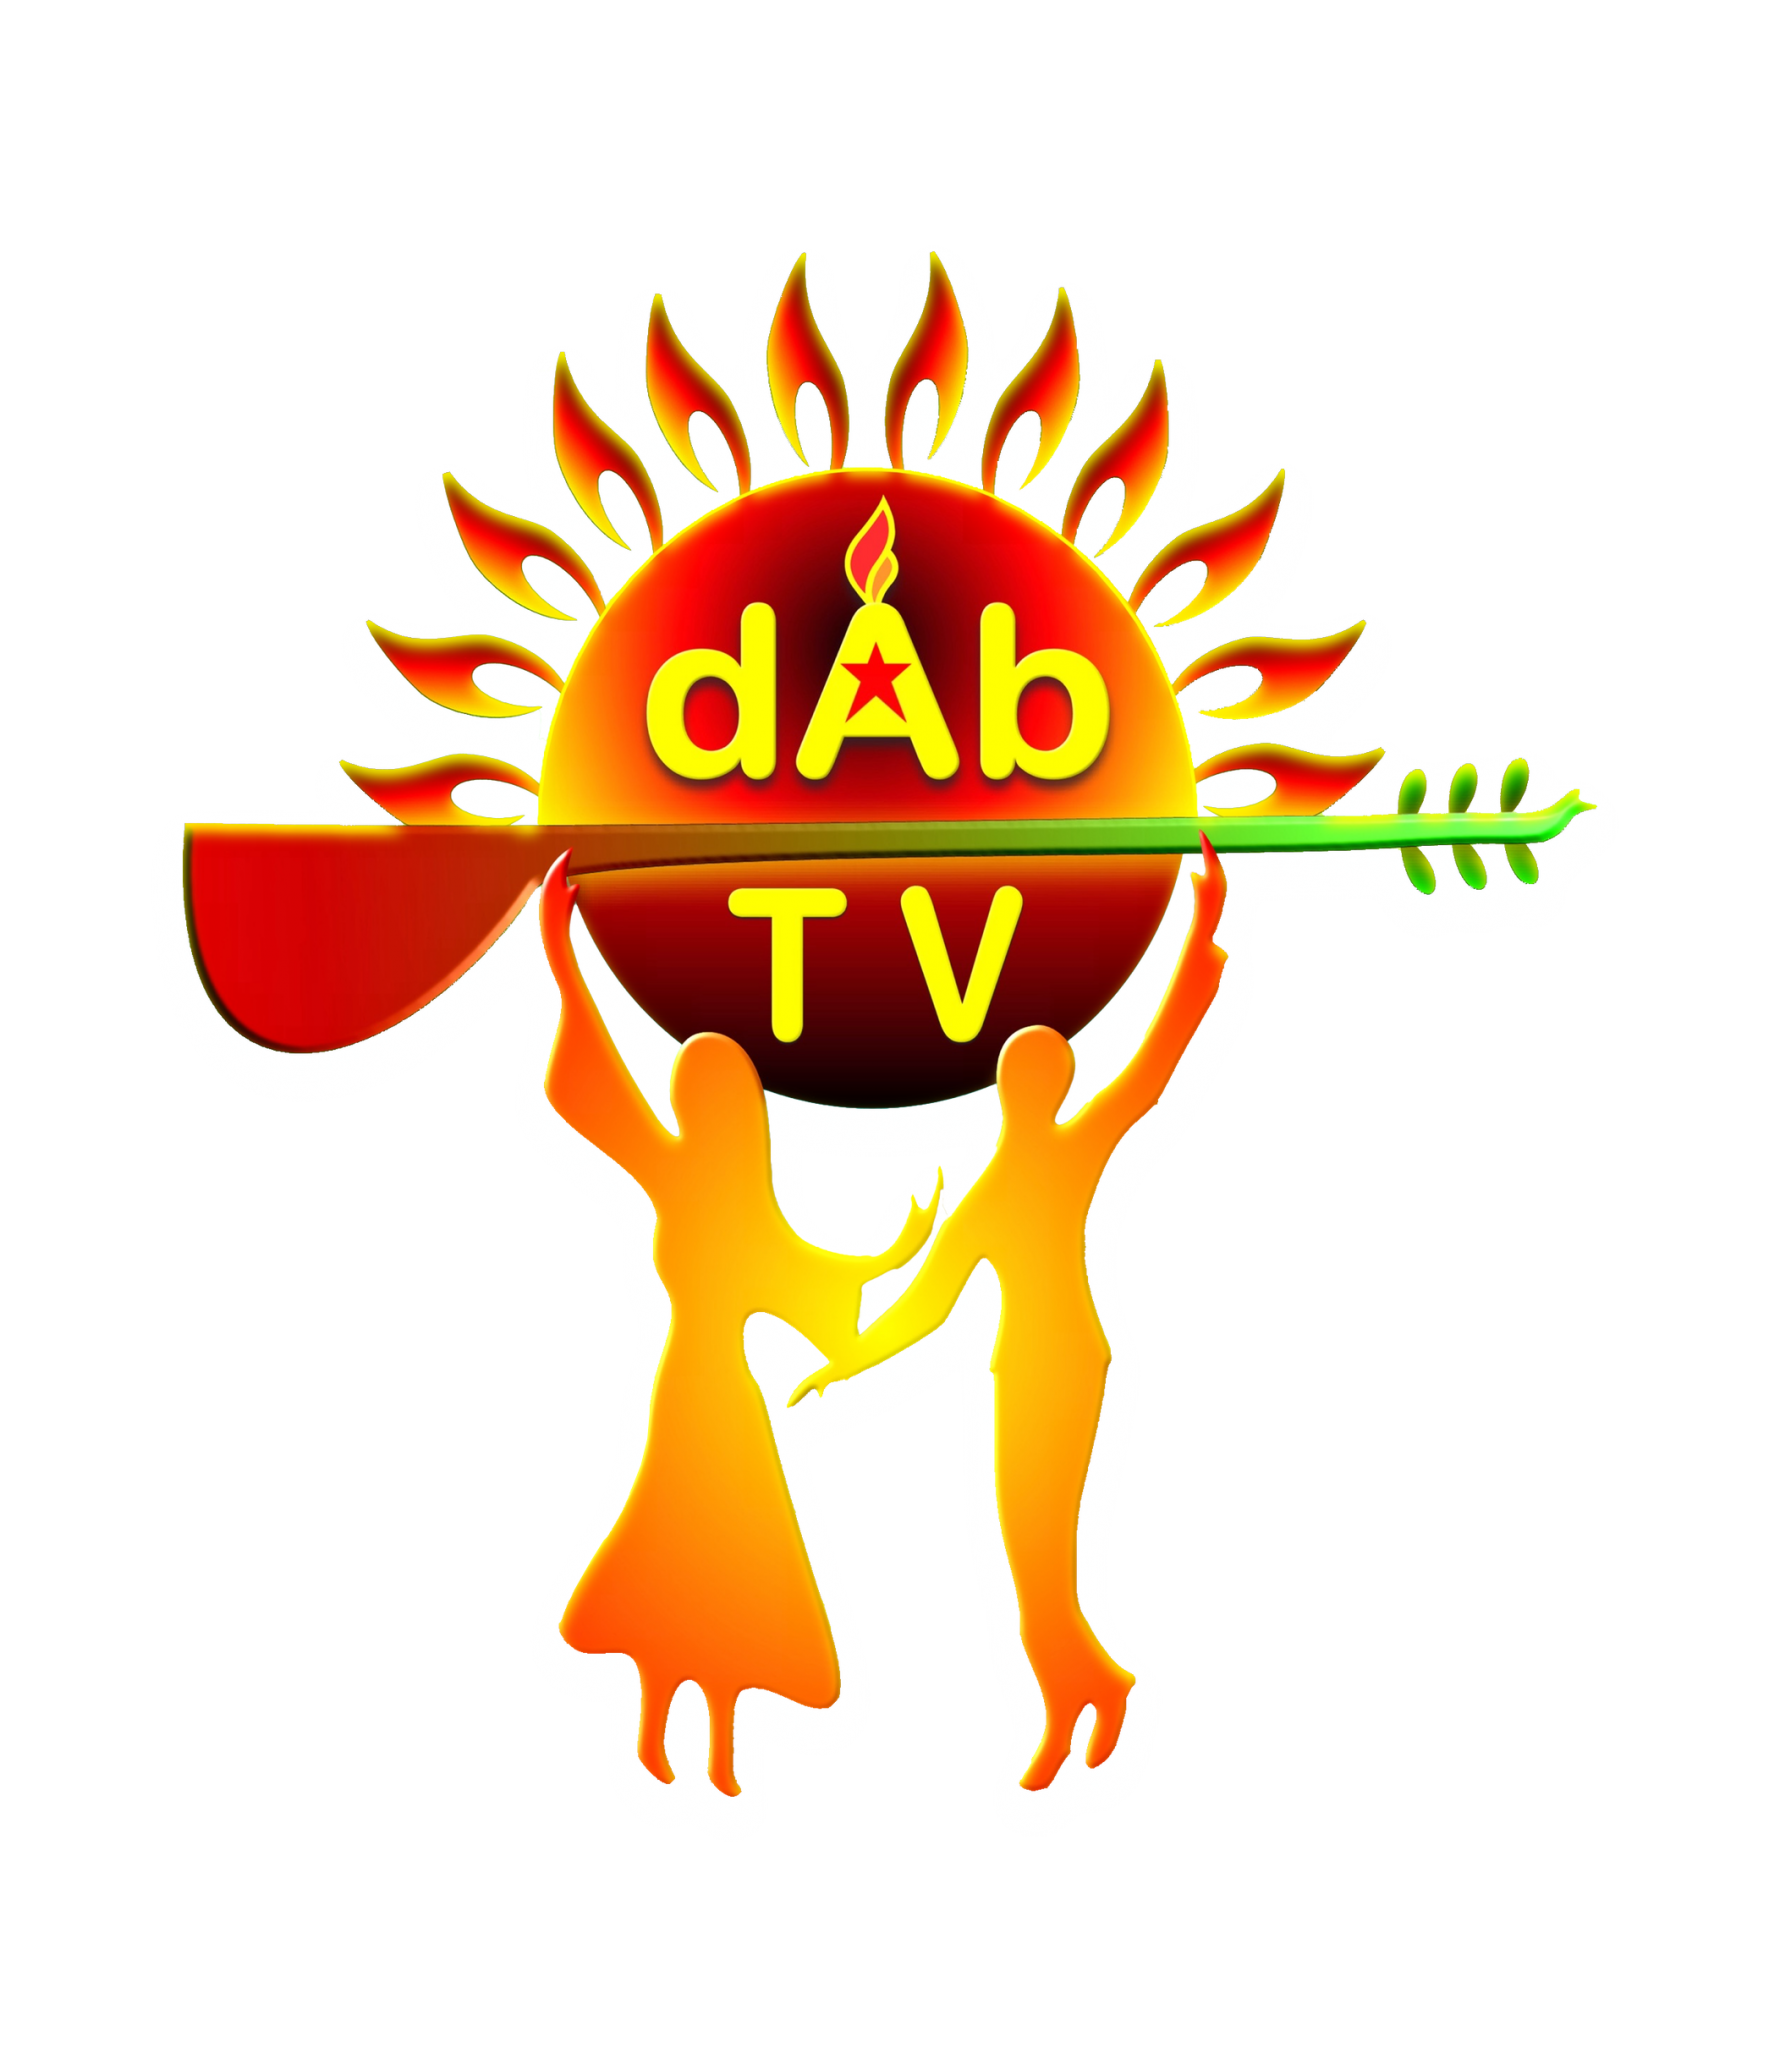 DAB Tv logo png xxxx copy33